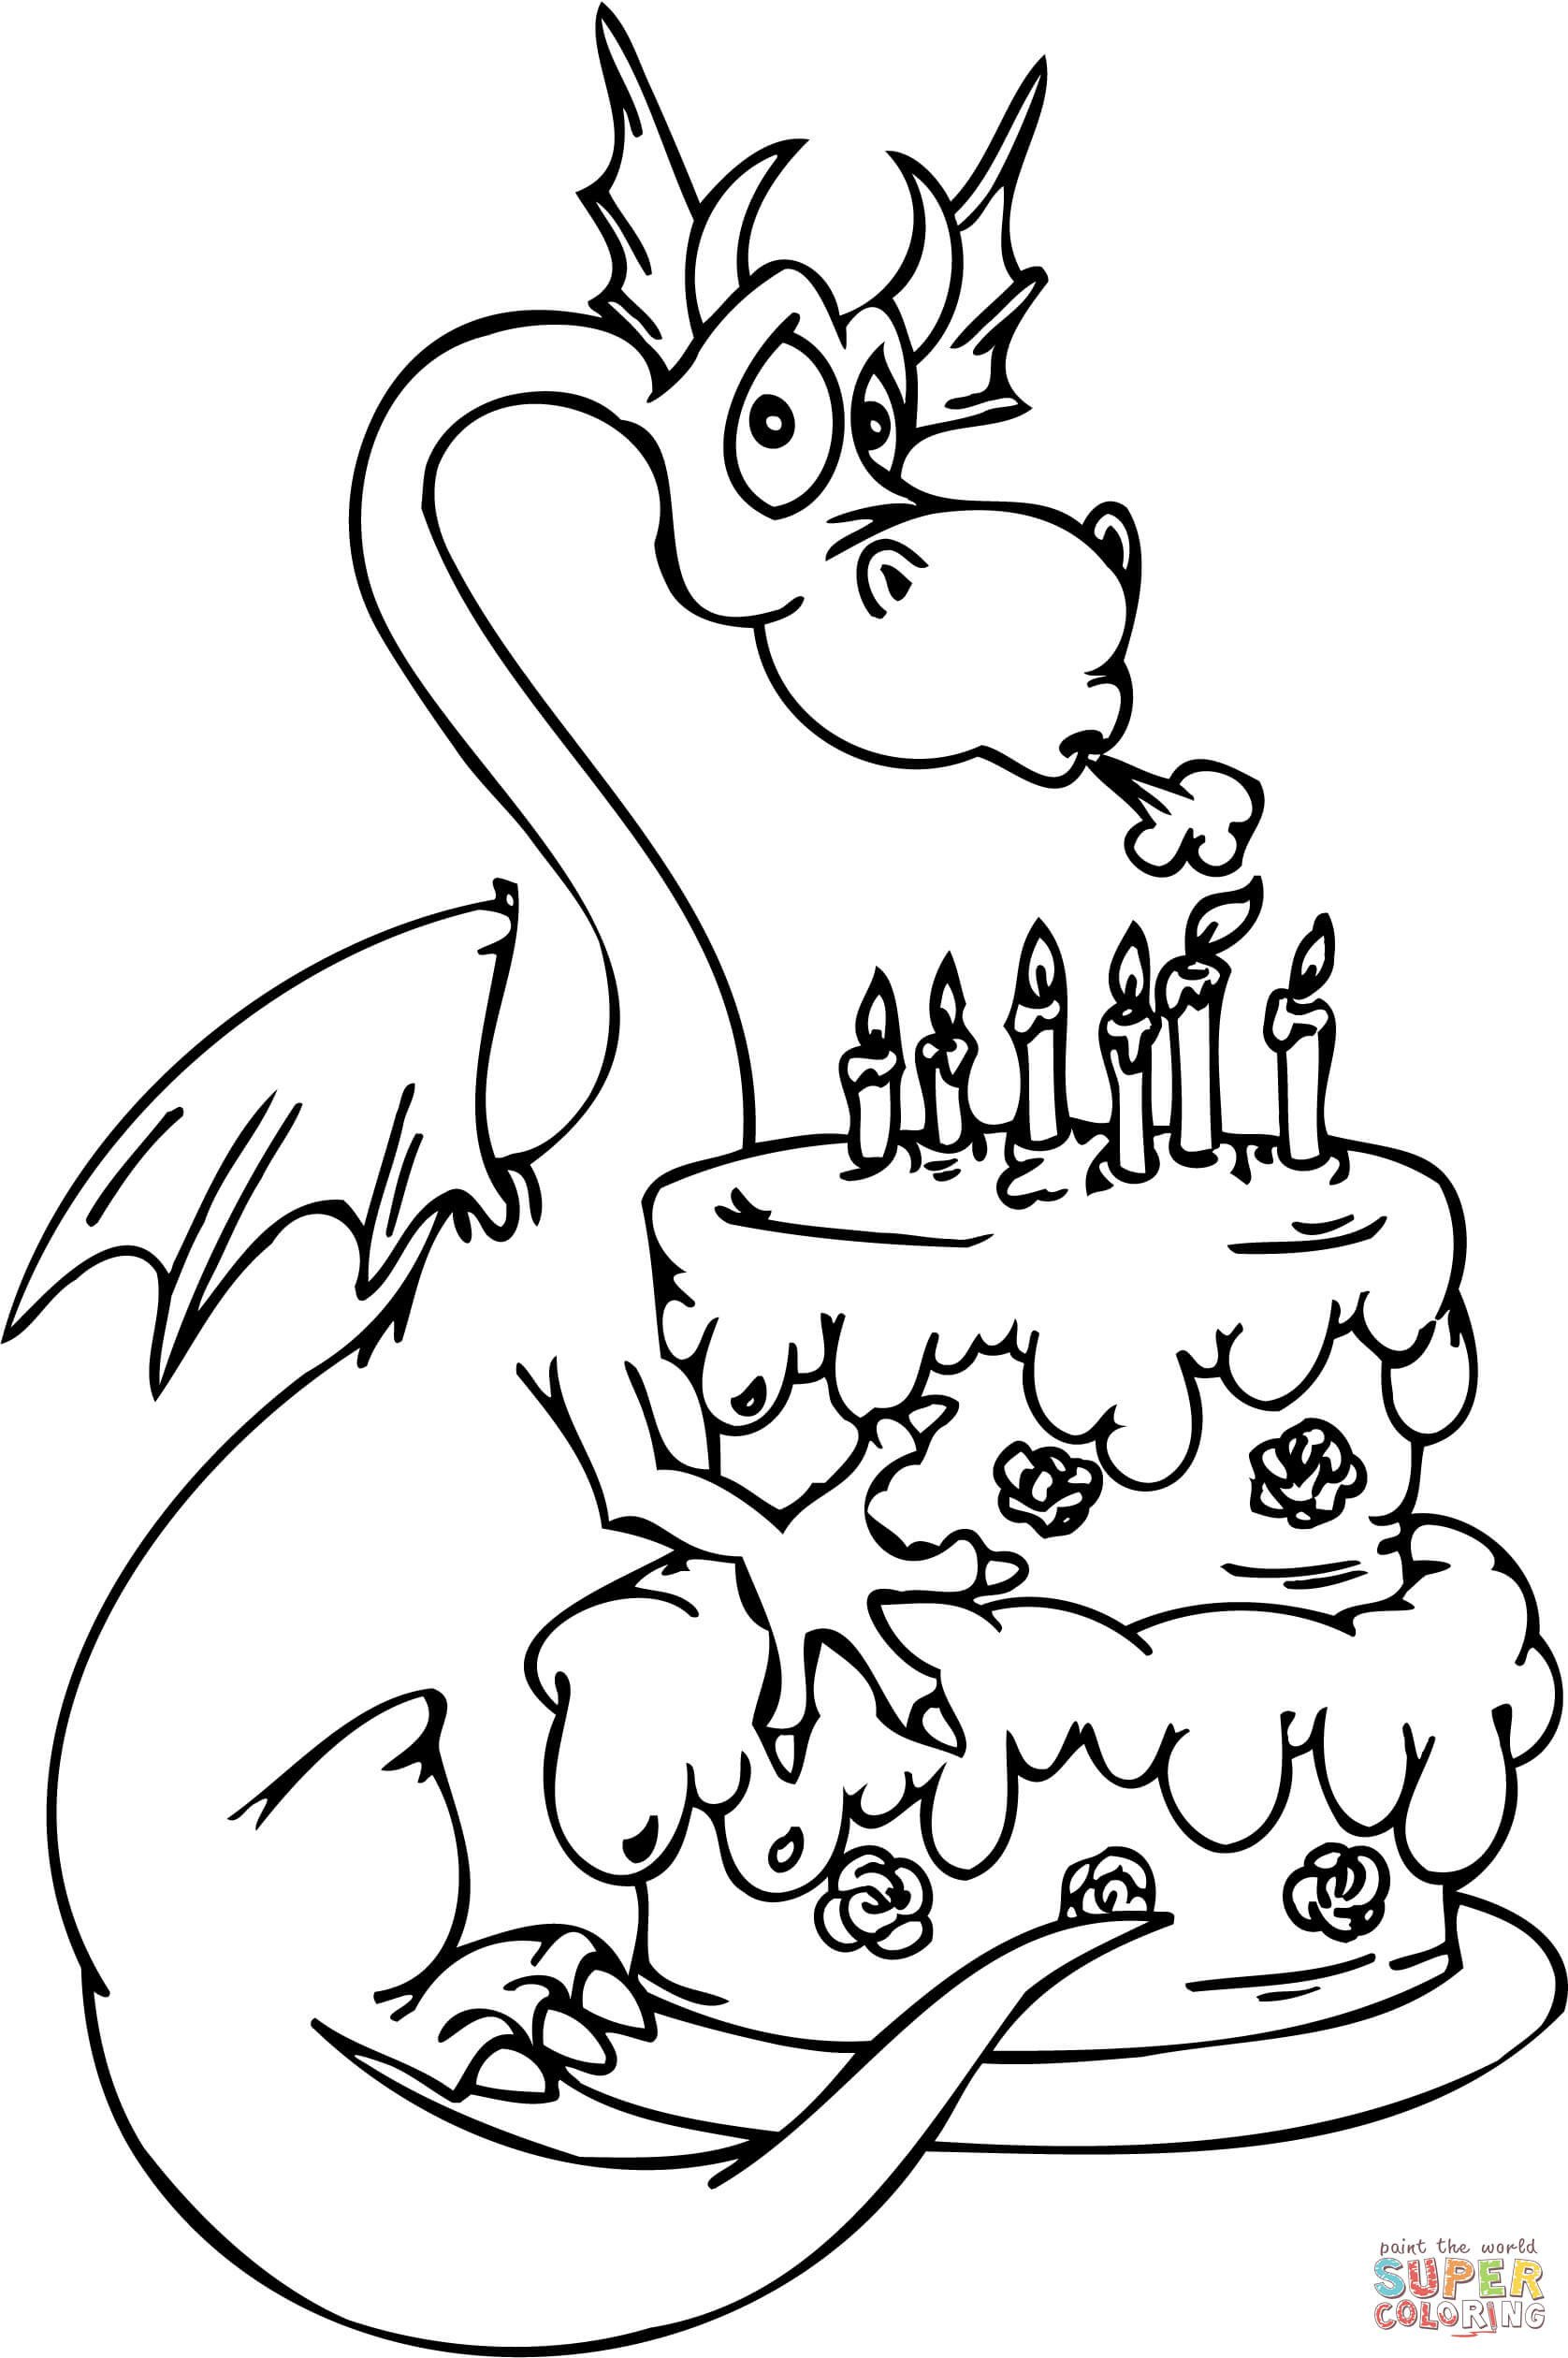 Happy Birthday Coloring Pages Dragon with Happy Birthday Cake Coloring Page